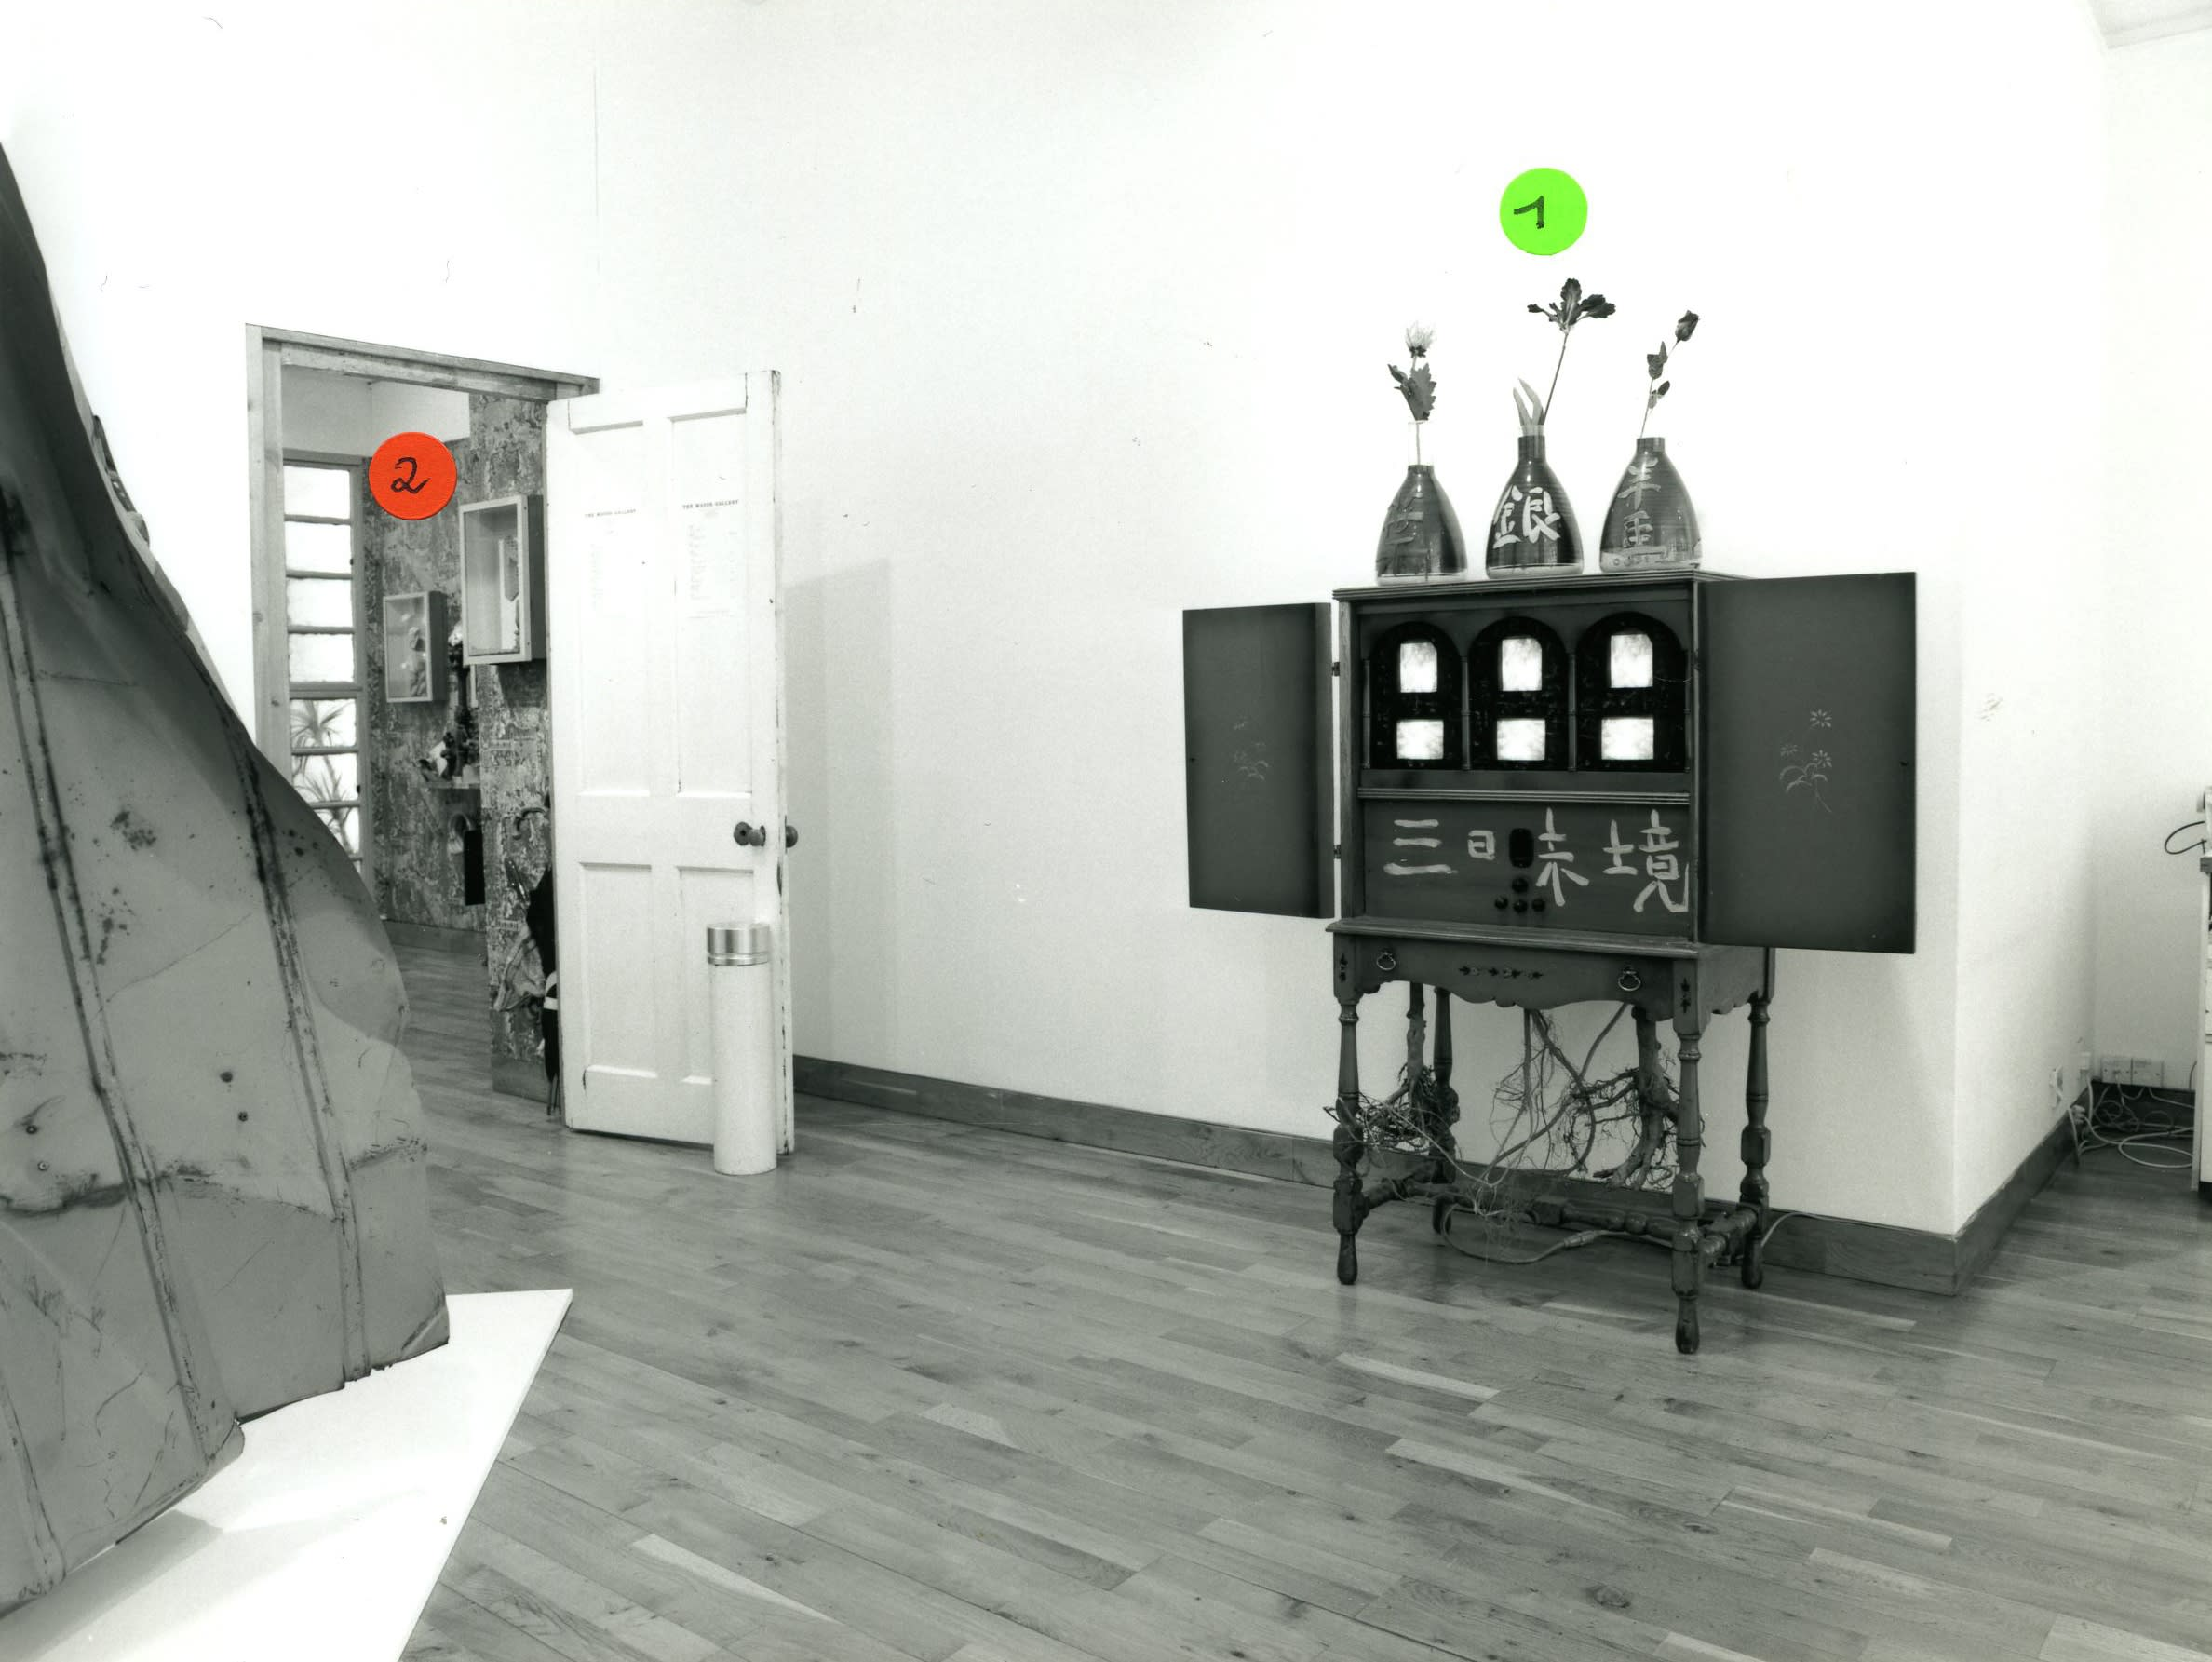 """<span class=""""link fancybox-details-link""""><a href=""""/exhibitions/171/works/image_standalone758/"""">View Detail Page</a></span><p>85 YEARS OF SCULPTURE 